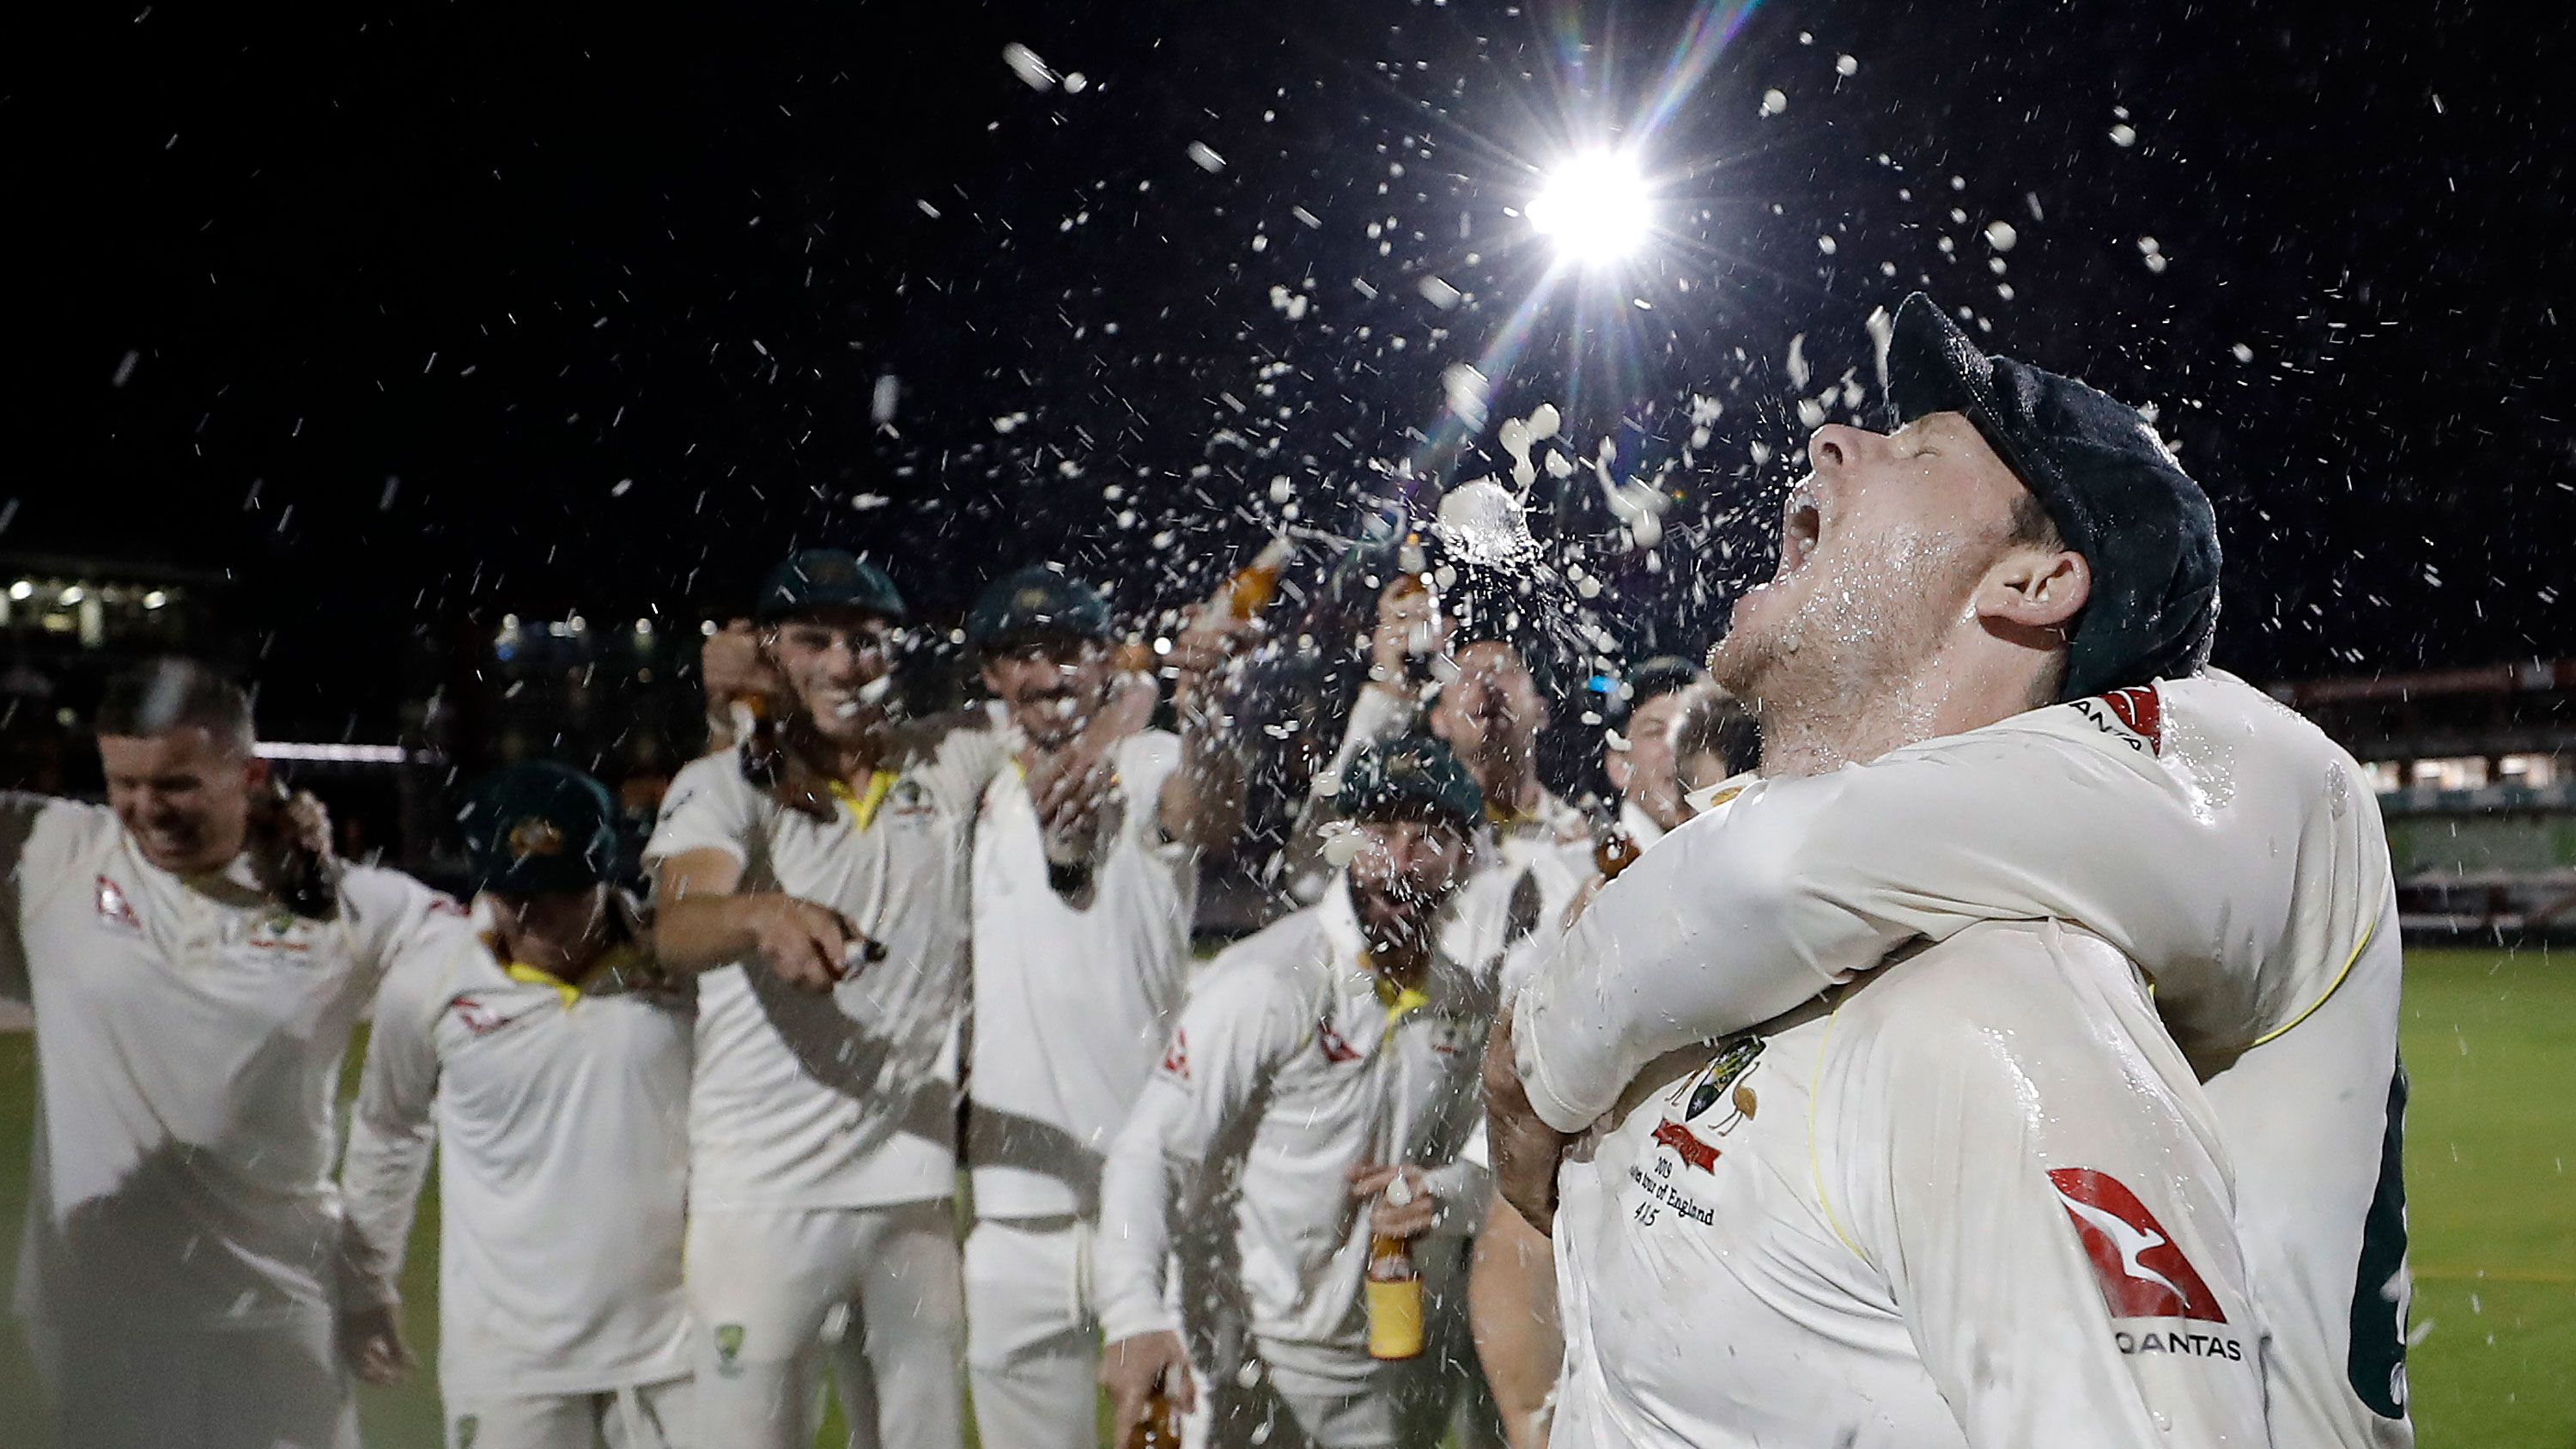 Steve Smith celebrates with his teammates while singing the team song on the pitch following victory in the fourth Test.